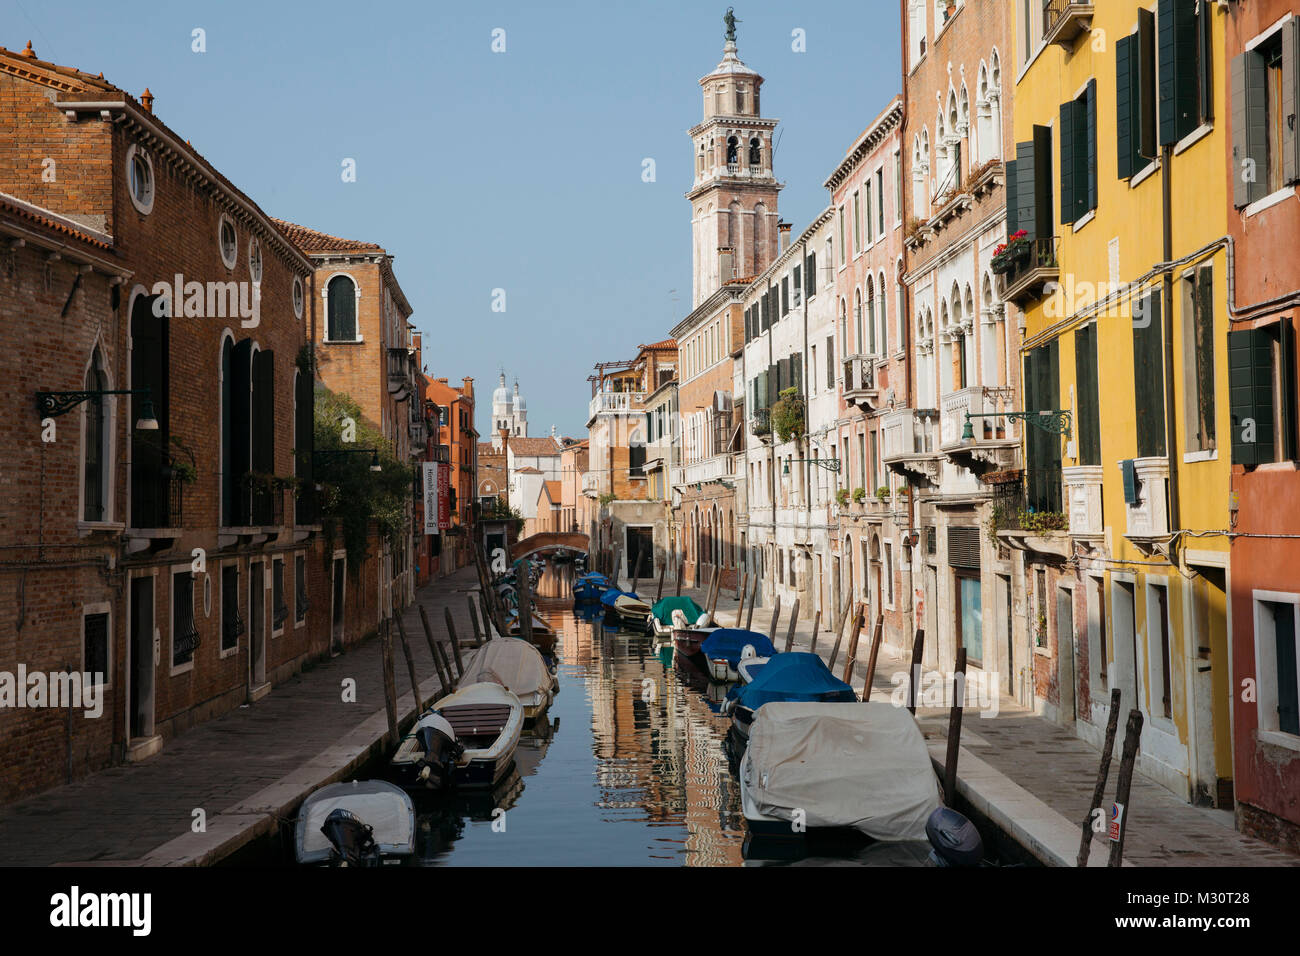 Street Photography in Venice, Italy - Stock Image